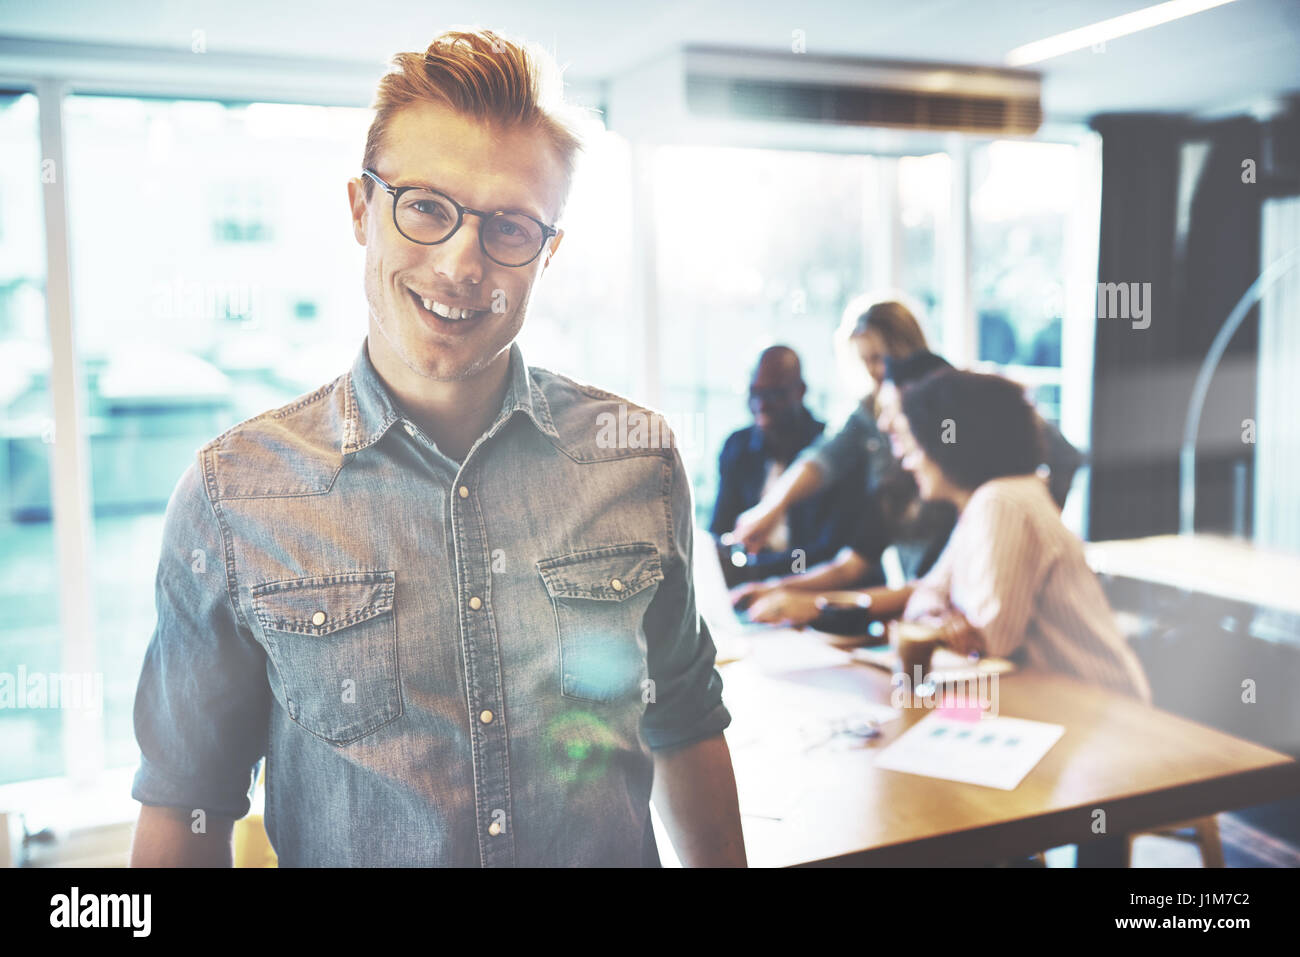 Cheerful handsome man in eyeglasses near partners in obscured background at a small office - Stock Image